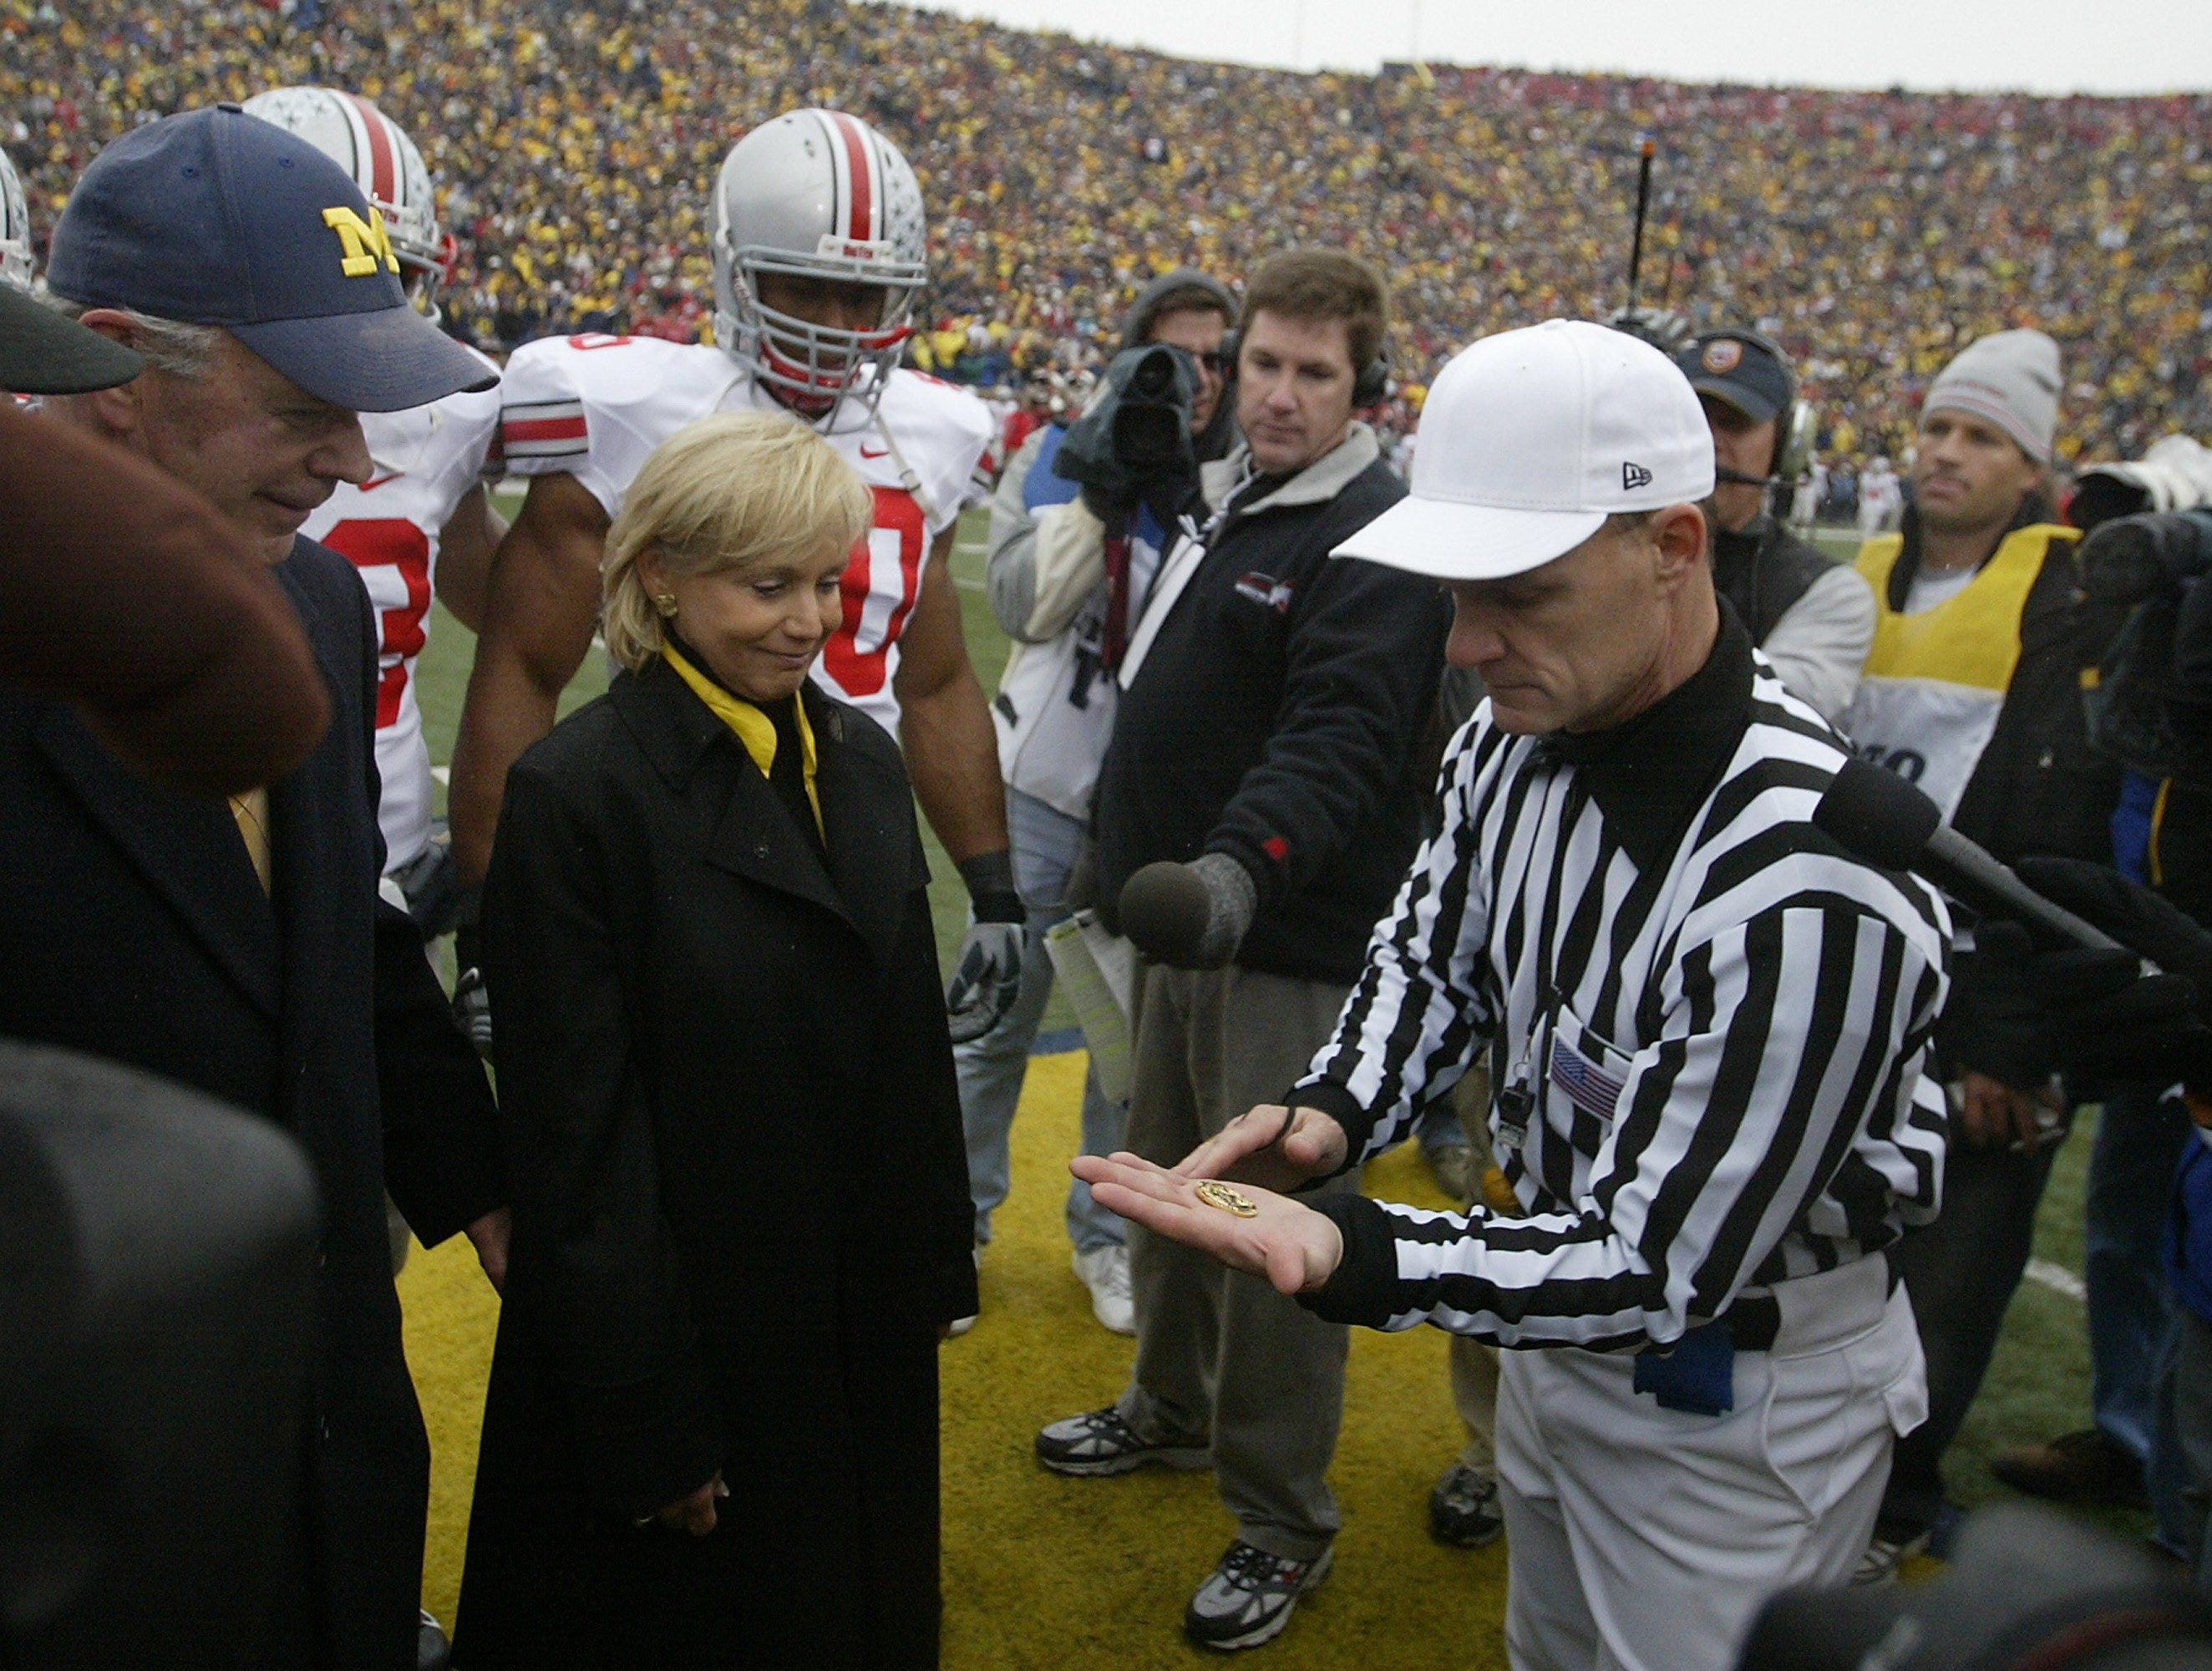 Schembechler family: 'Bo was not aware' of Robert Anderson's sexual assaults at Michigan